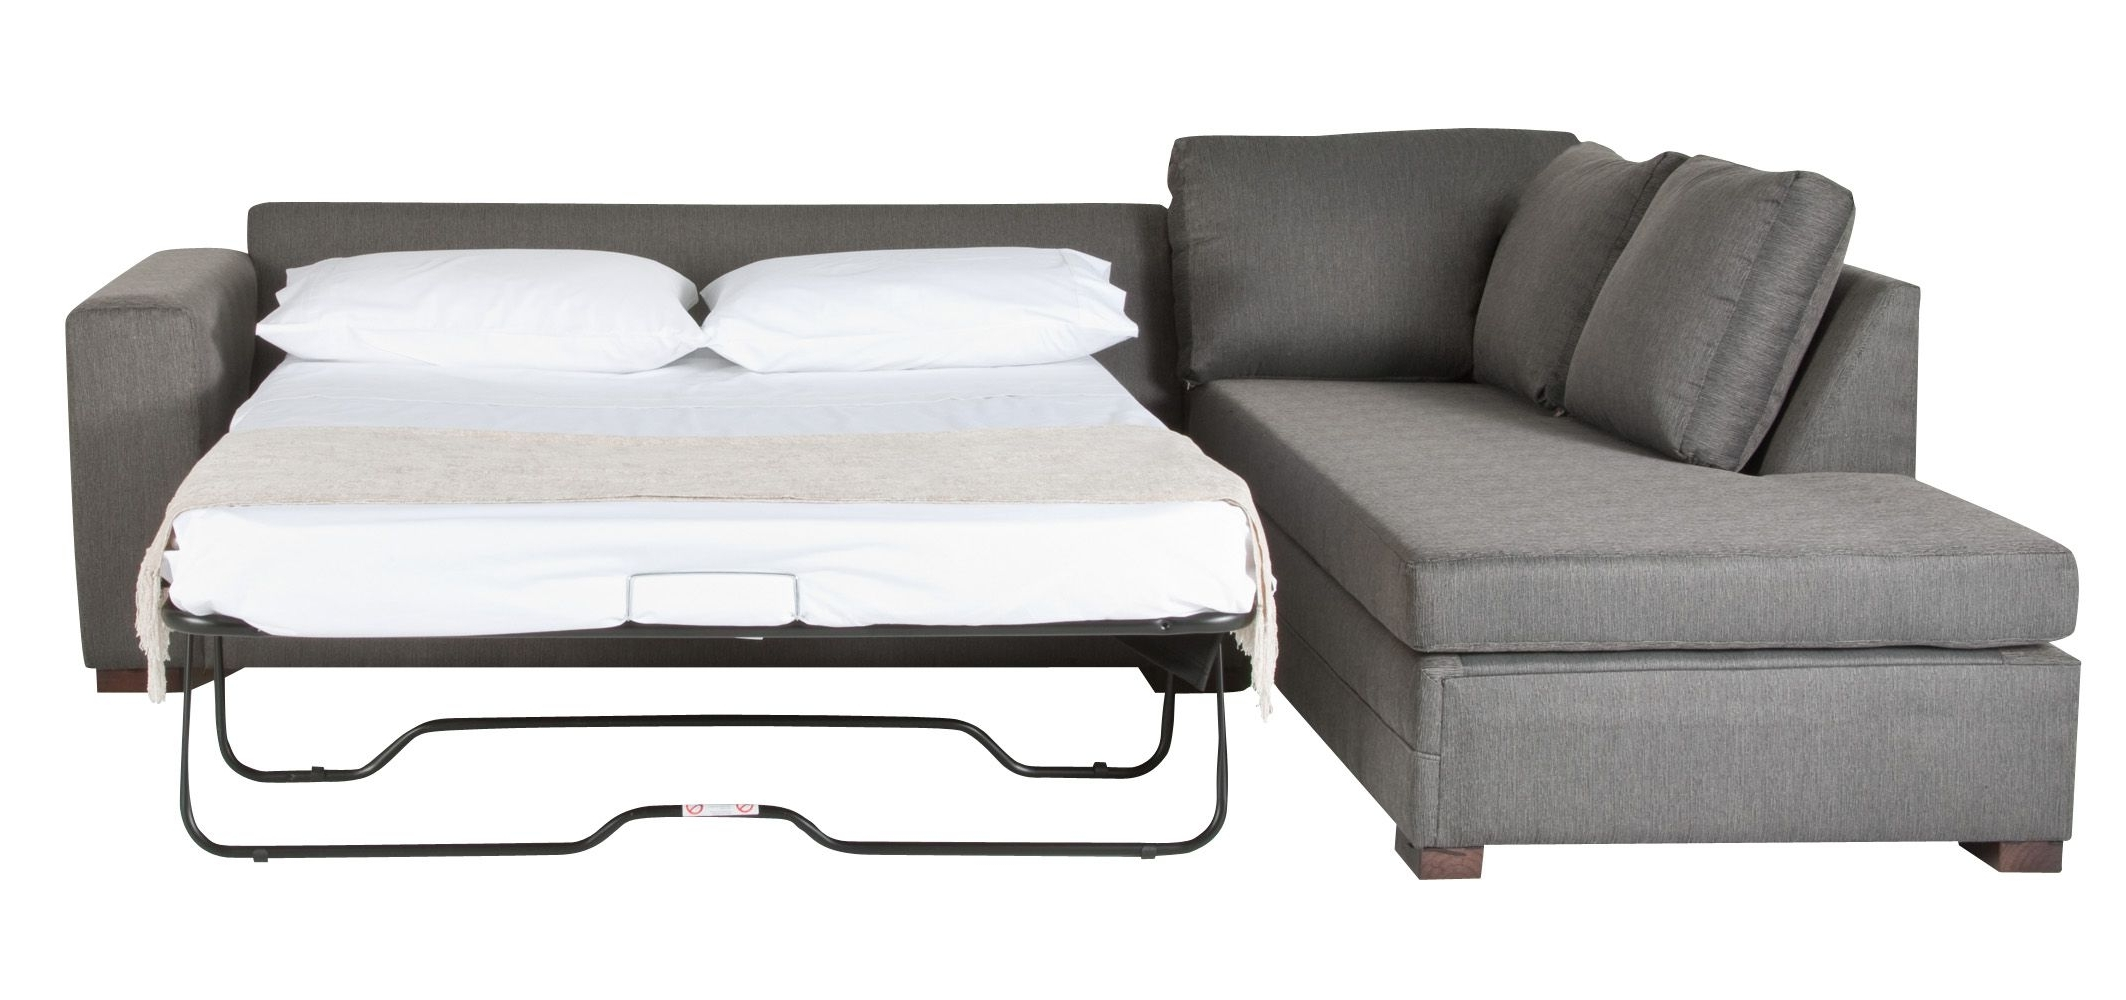 Picturesque Gray Fabric Sleeper Couch With Pull Out Bed White Regarding Most Recent Sectional Sofas With Queen Size Sleeper (View 4 of 15)